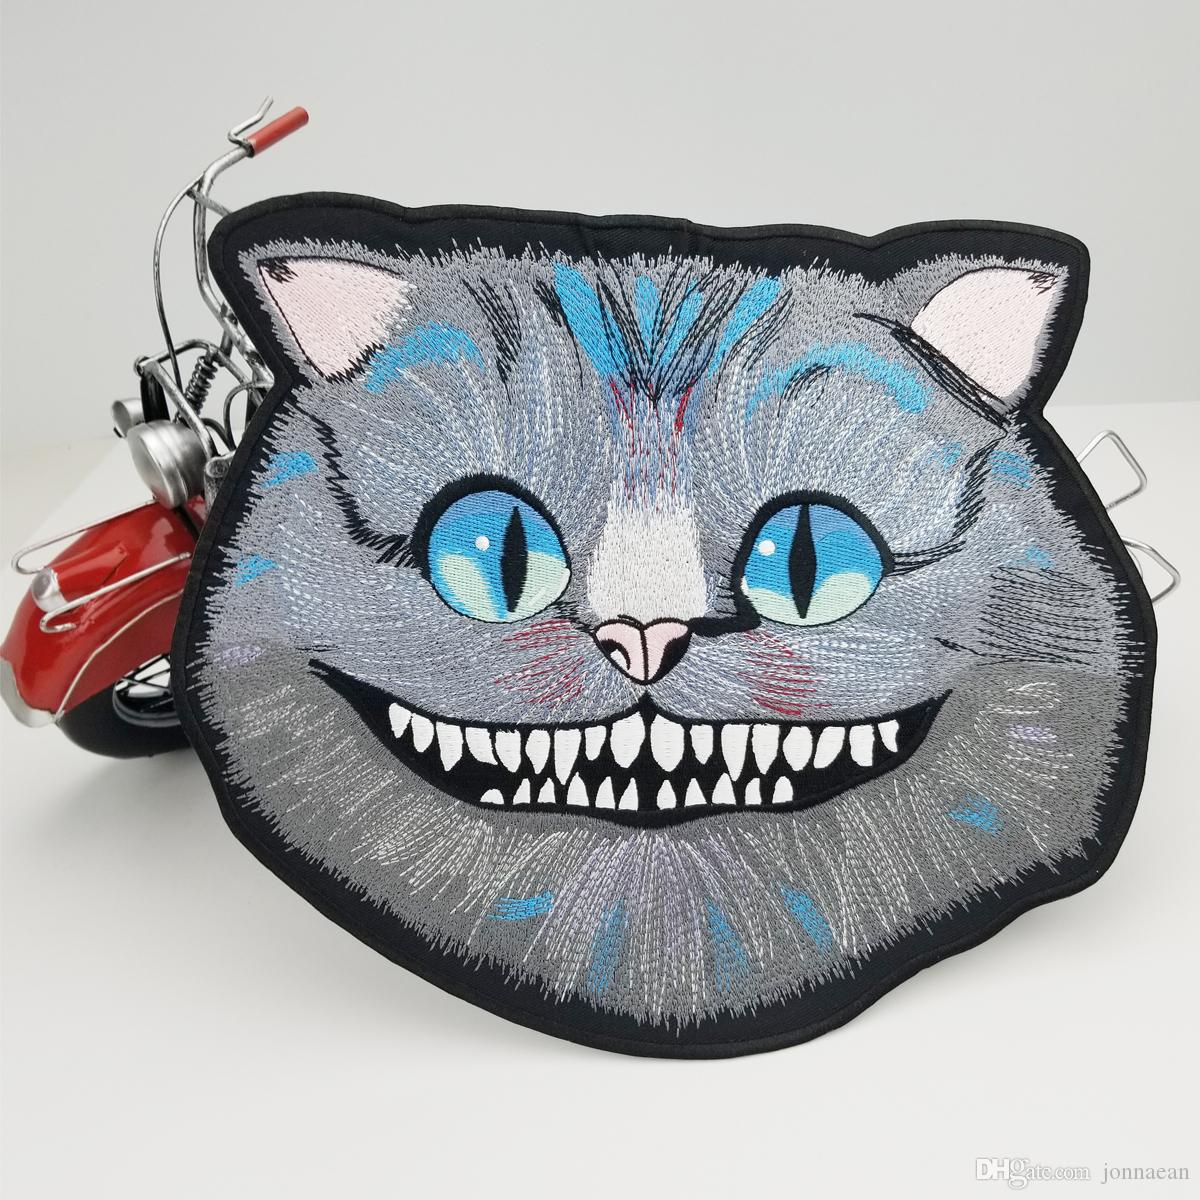 Cheshire Cat Large Embroidered Patch Iron On Big Size for Full Back of Jacket Rider Biker Patch